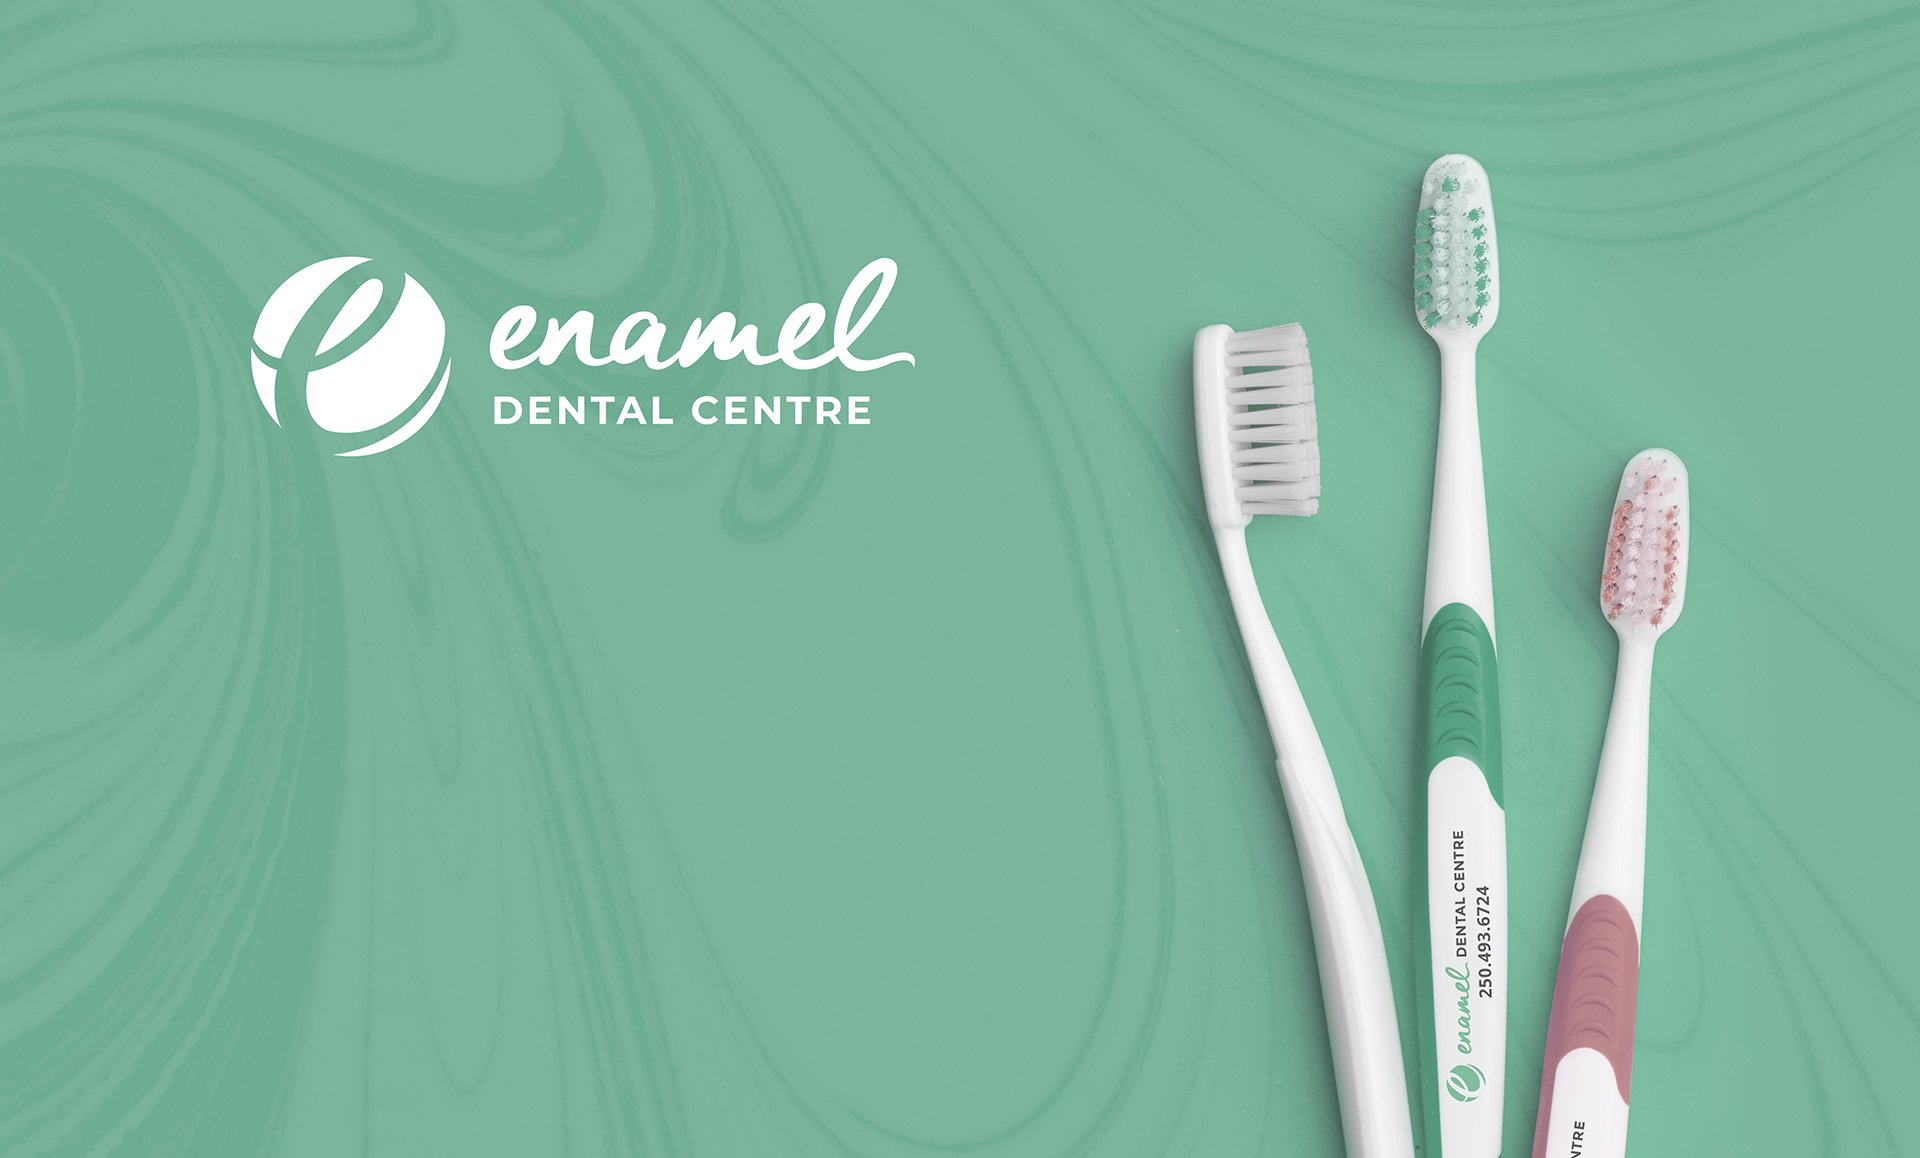 Read more on Enamel Dental